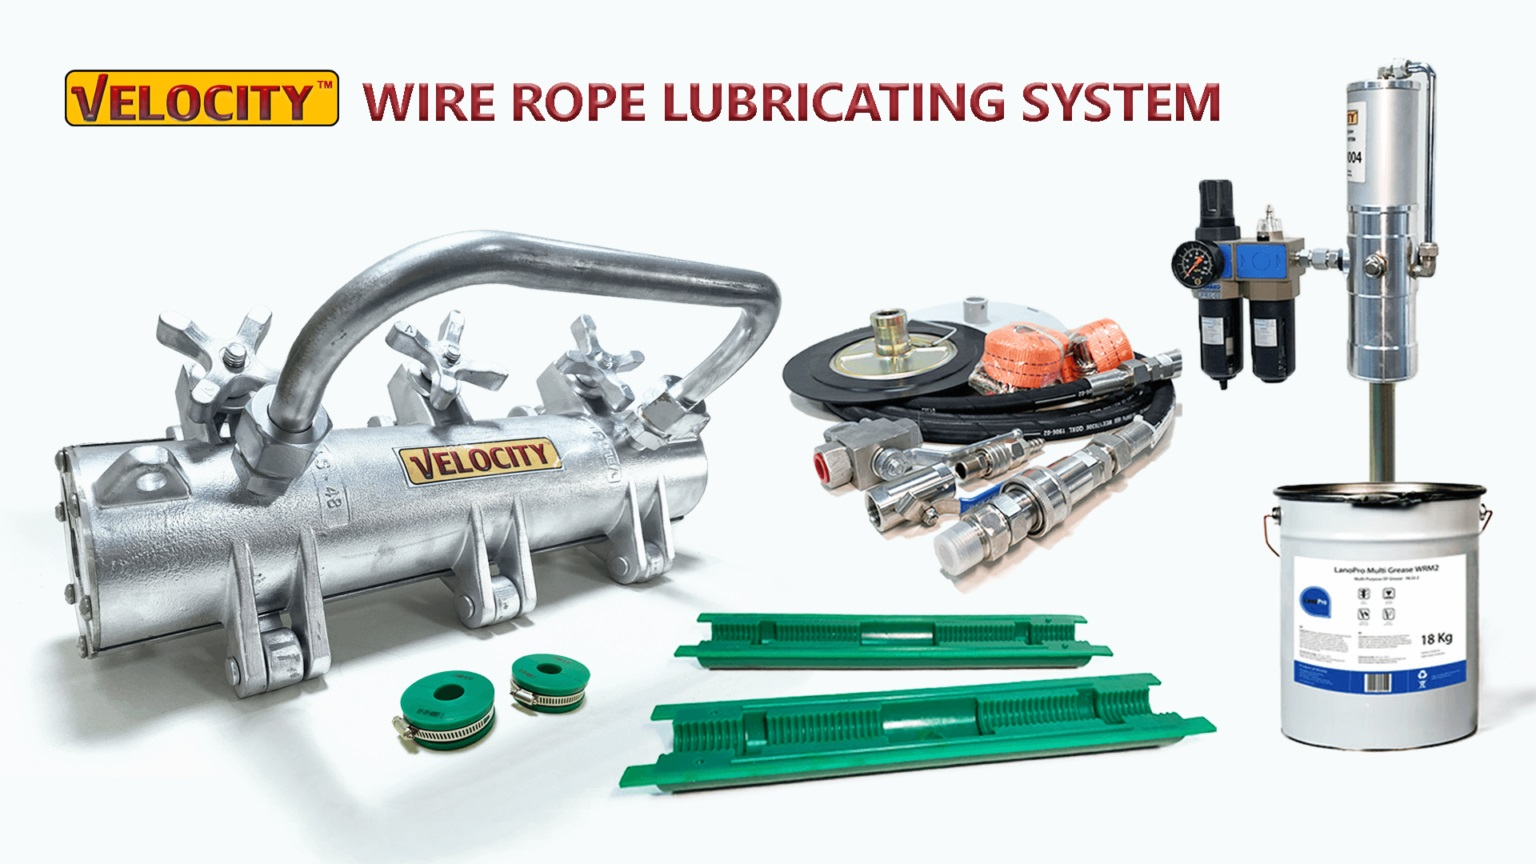 Wire rope lubricating system